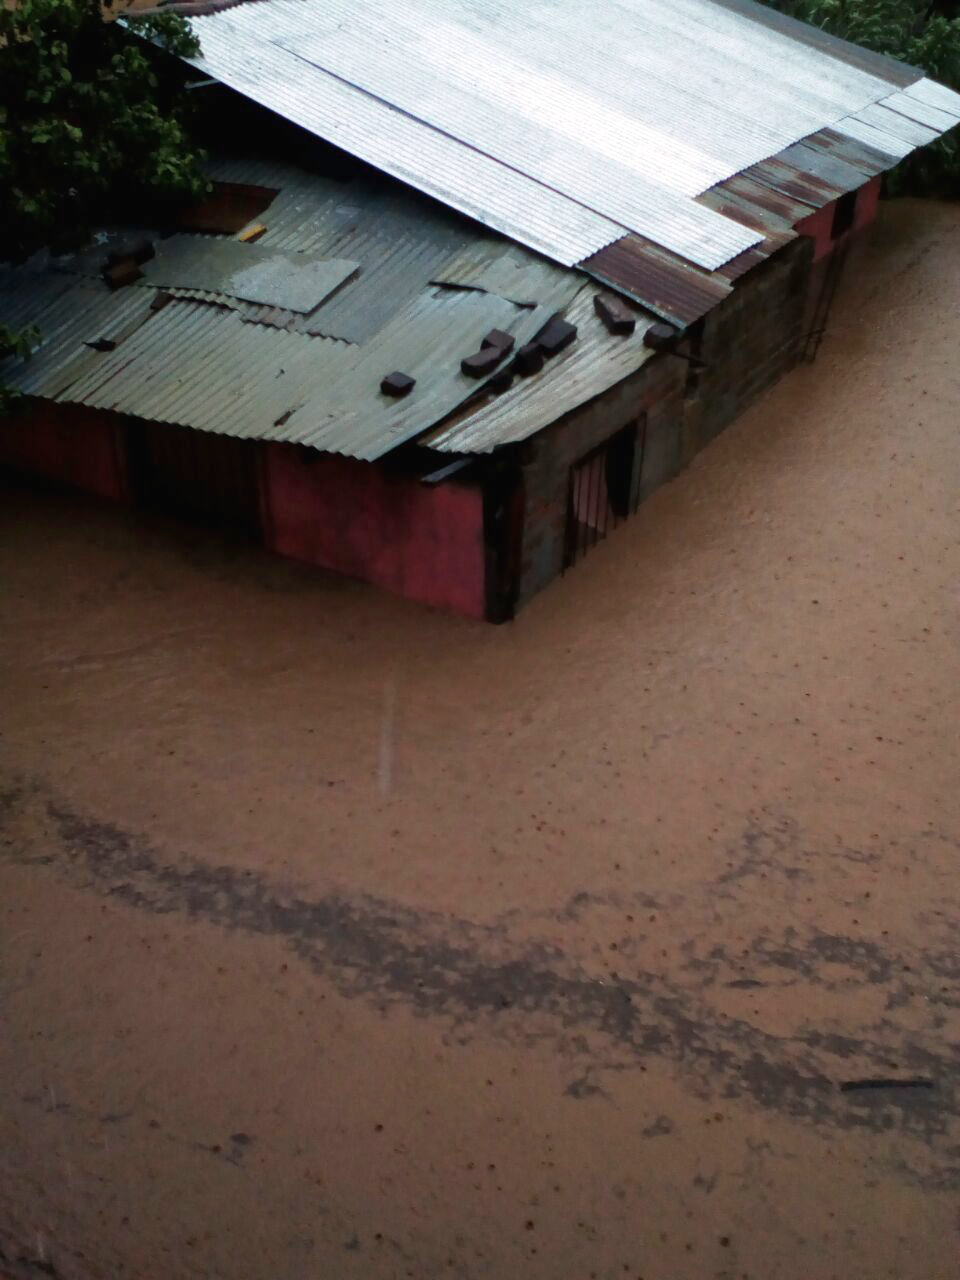 This photo was taken by Field Operations Manager Jessica Southern, looking down from her second story home. Her neighbors, friends of many years, encountered flood levels far above waistline.